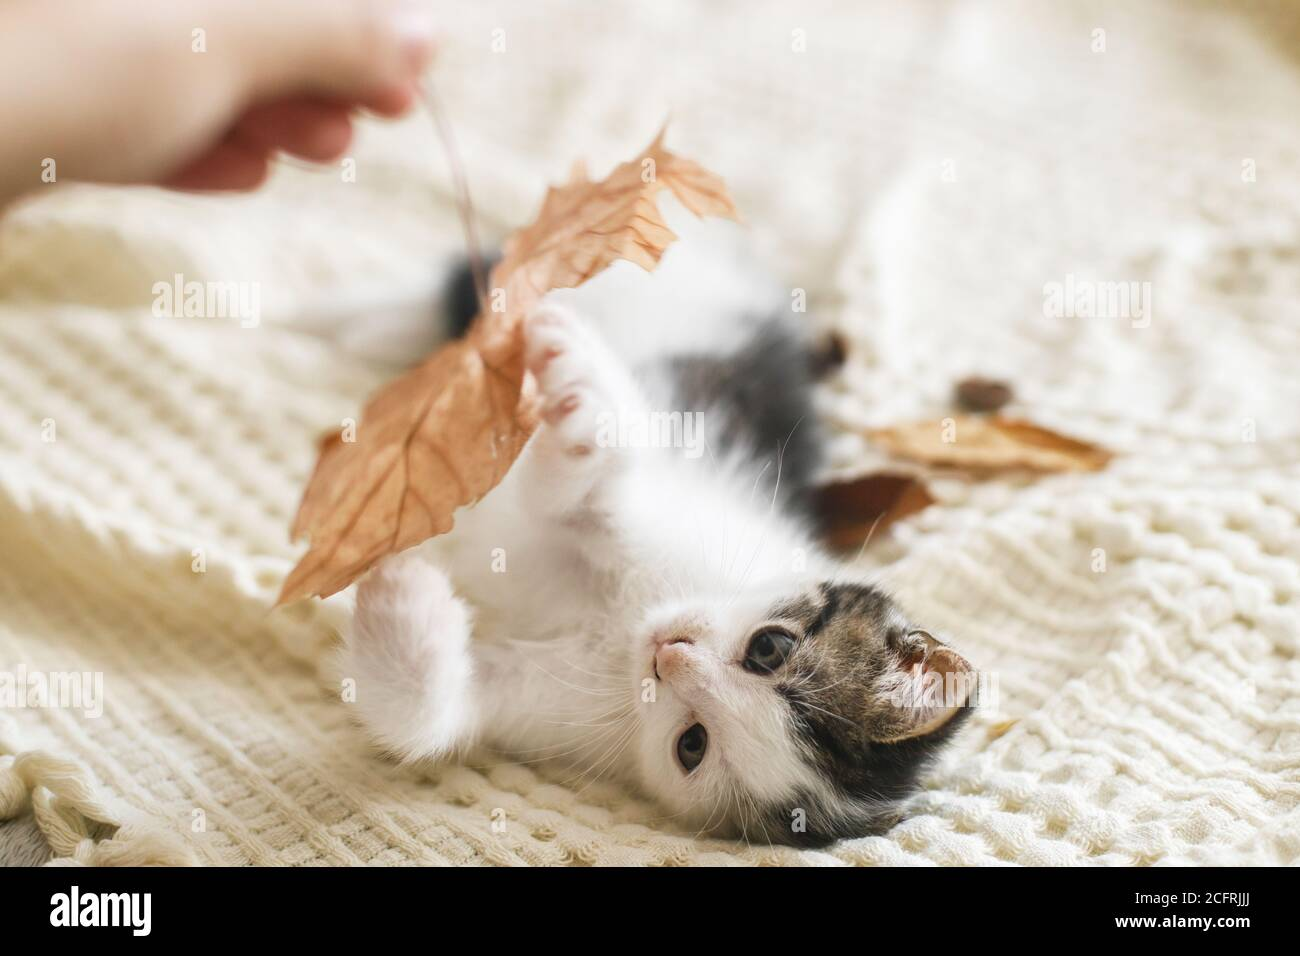 Adorable kitten playing with autumn leaves on soft blanket. Hand holding fall leaf and playing with cute white and grey kitty on bed in room. Autumn c Stock Photo